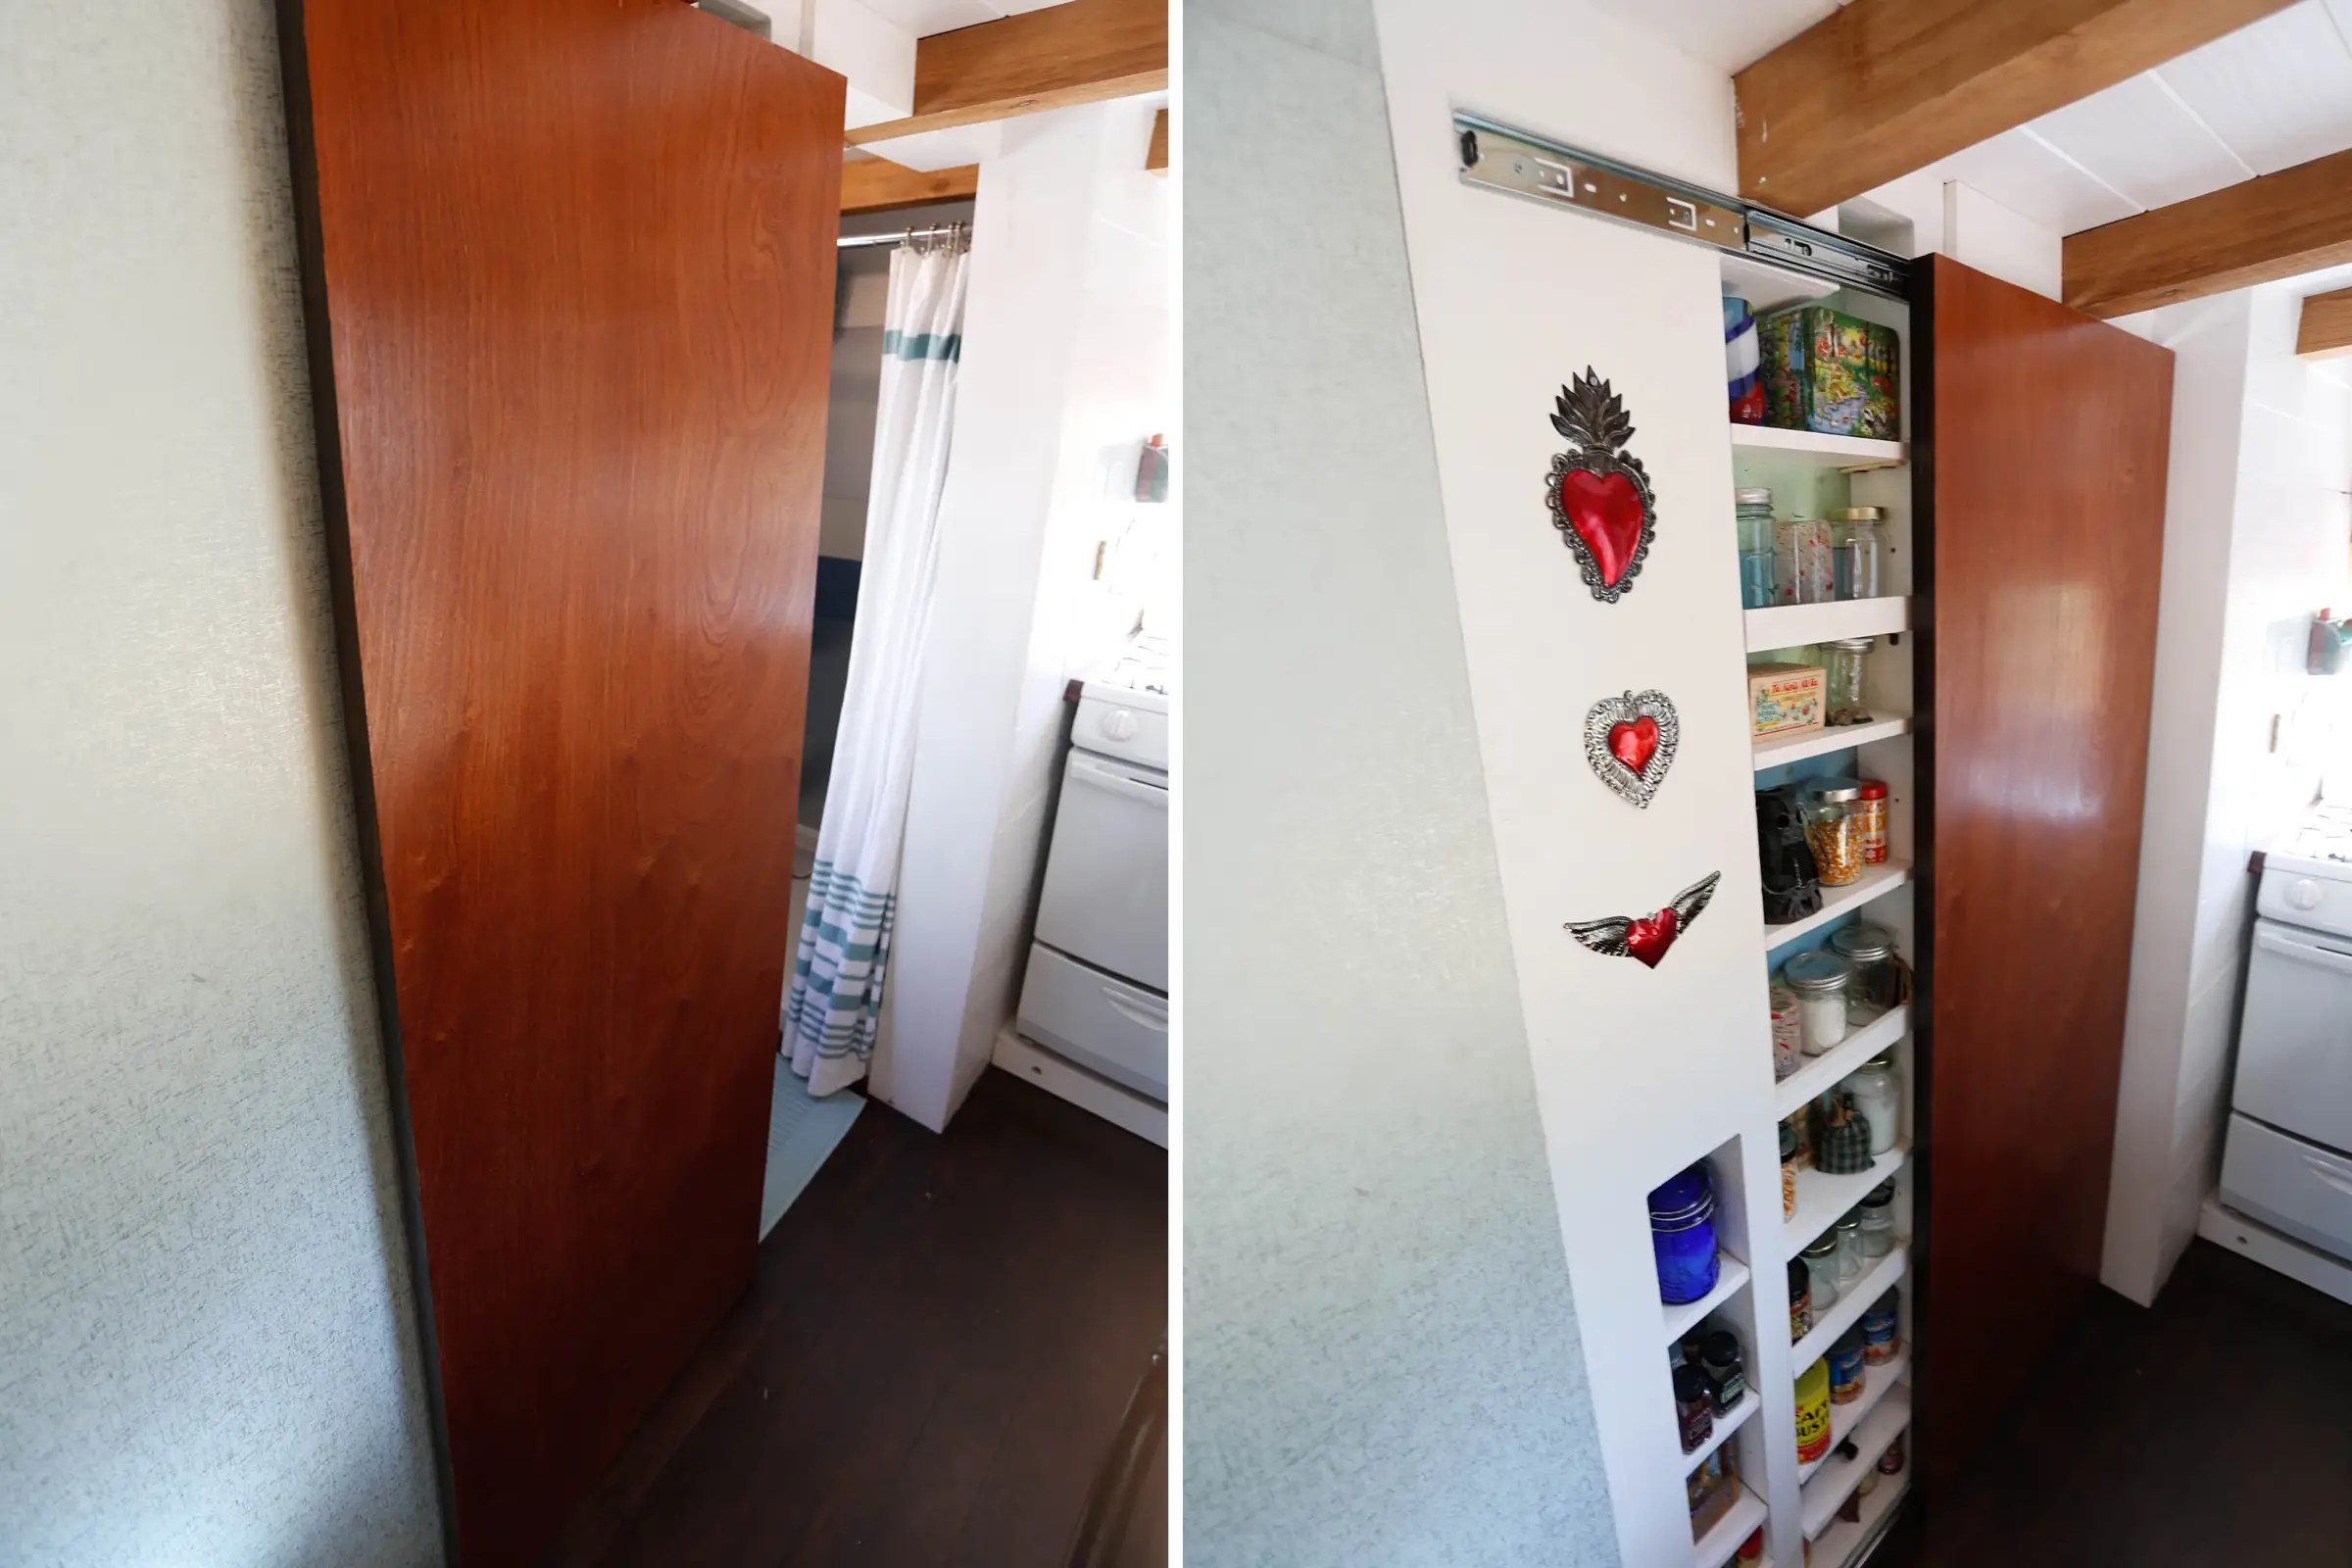 The bathroom door slides to reveal a full-sized pantry.